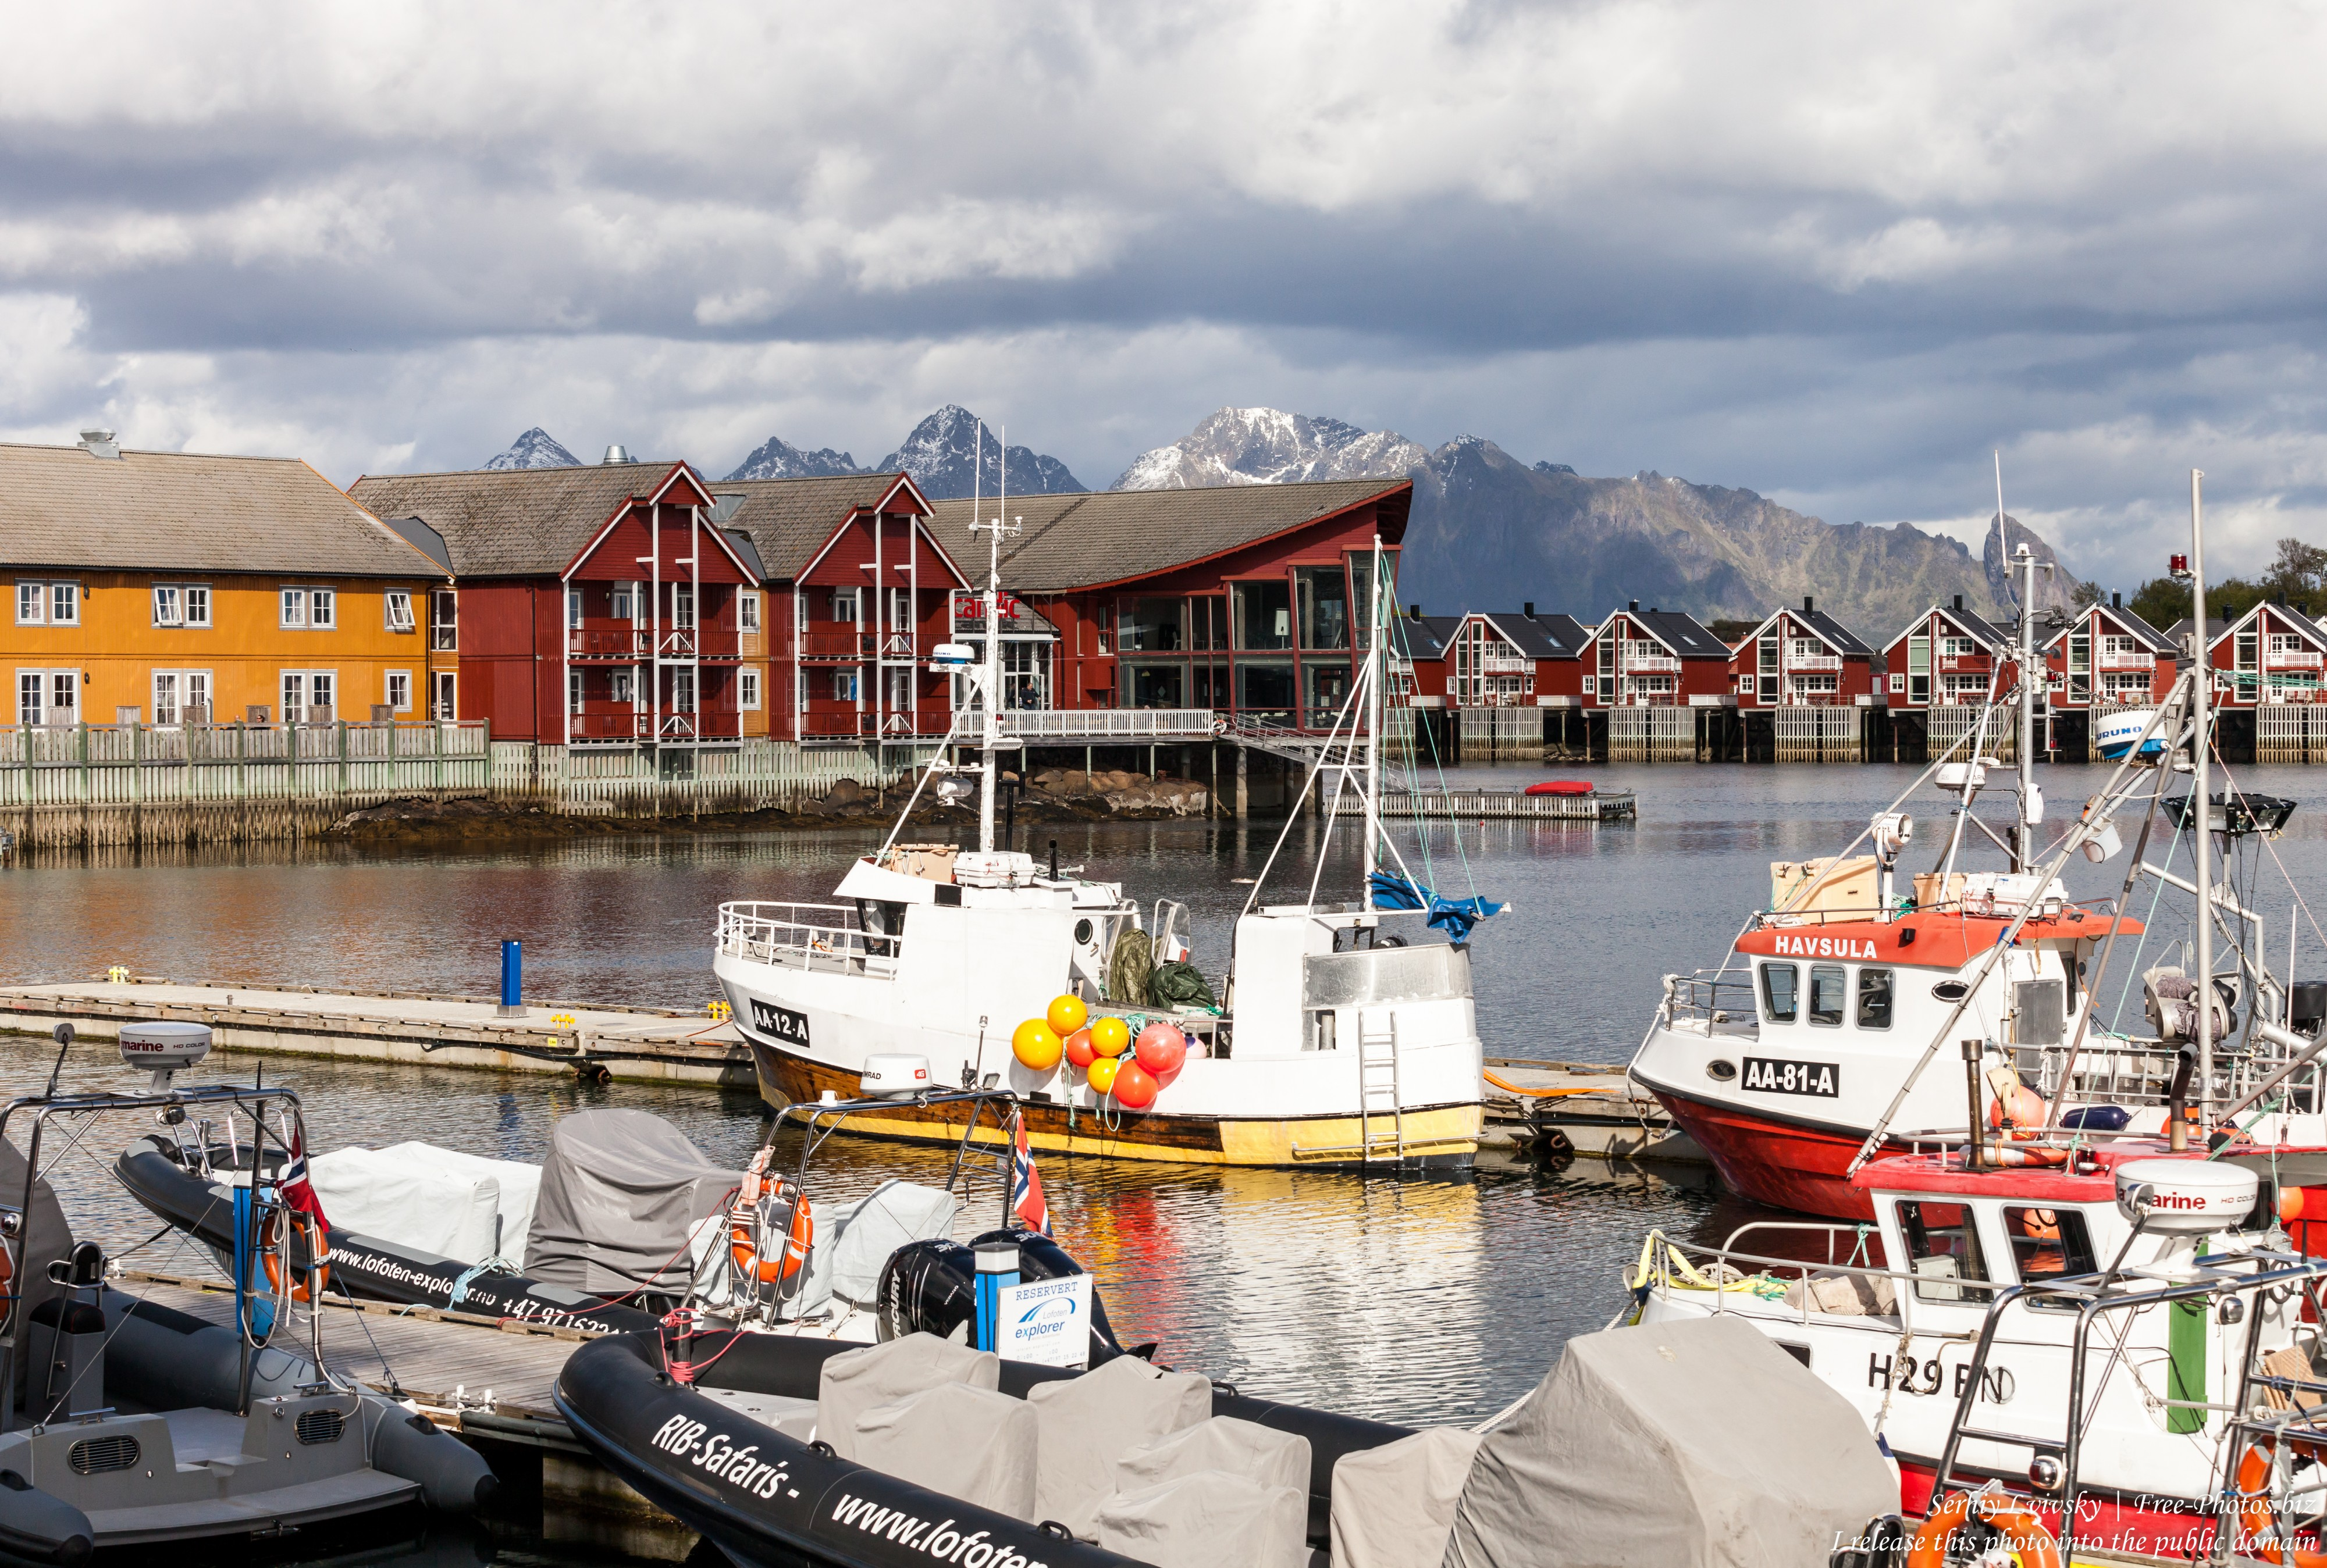 Svolvaer, Lofoten, Norway photographed in June 2018 by Serhiy Lvivsky, picture 12